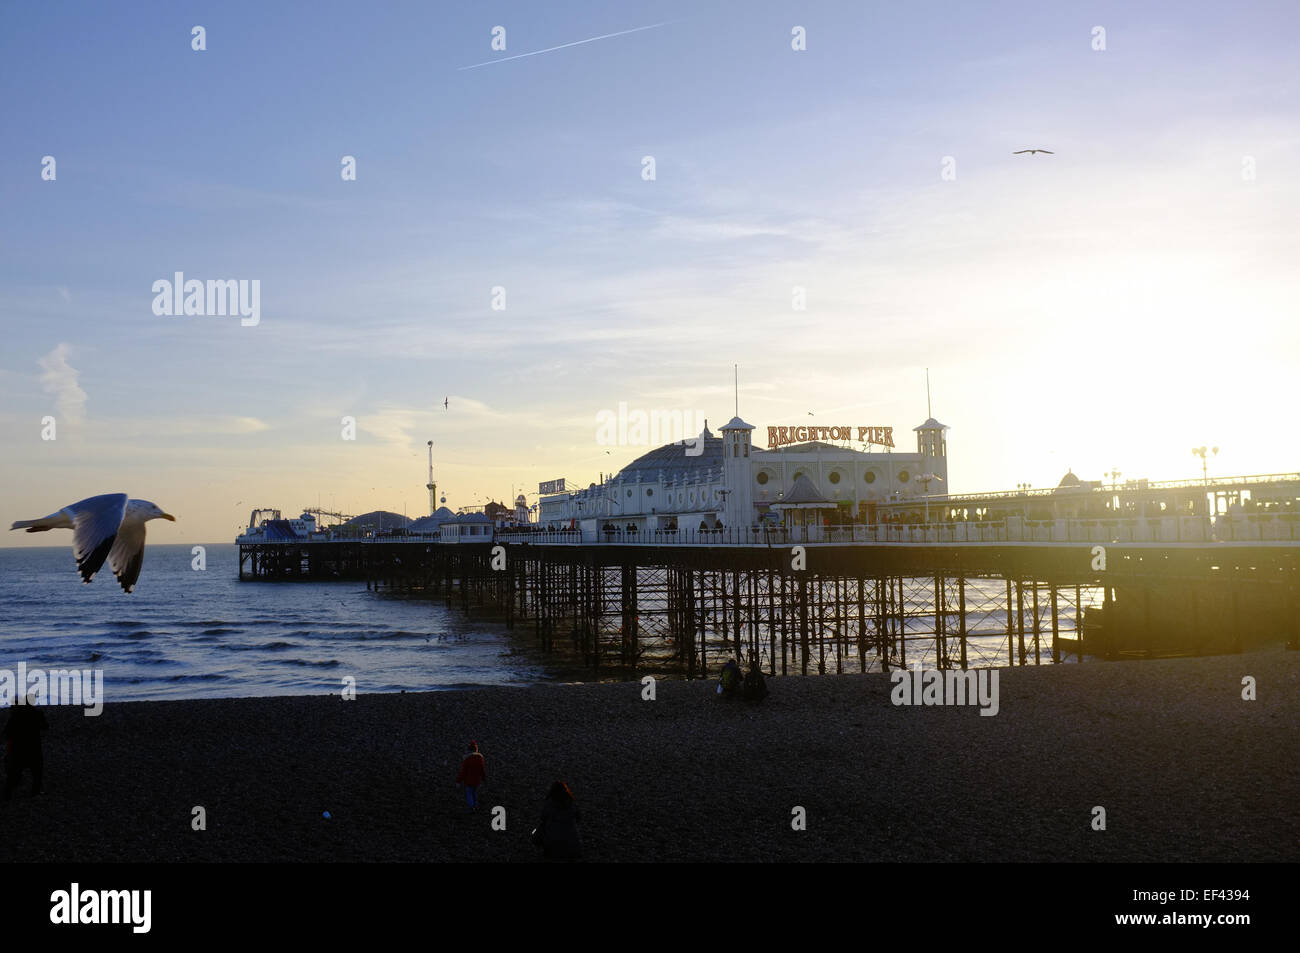 in Brighton. - Stock Image